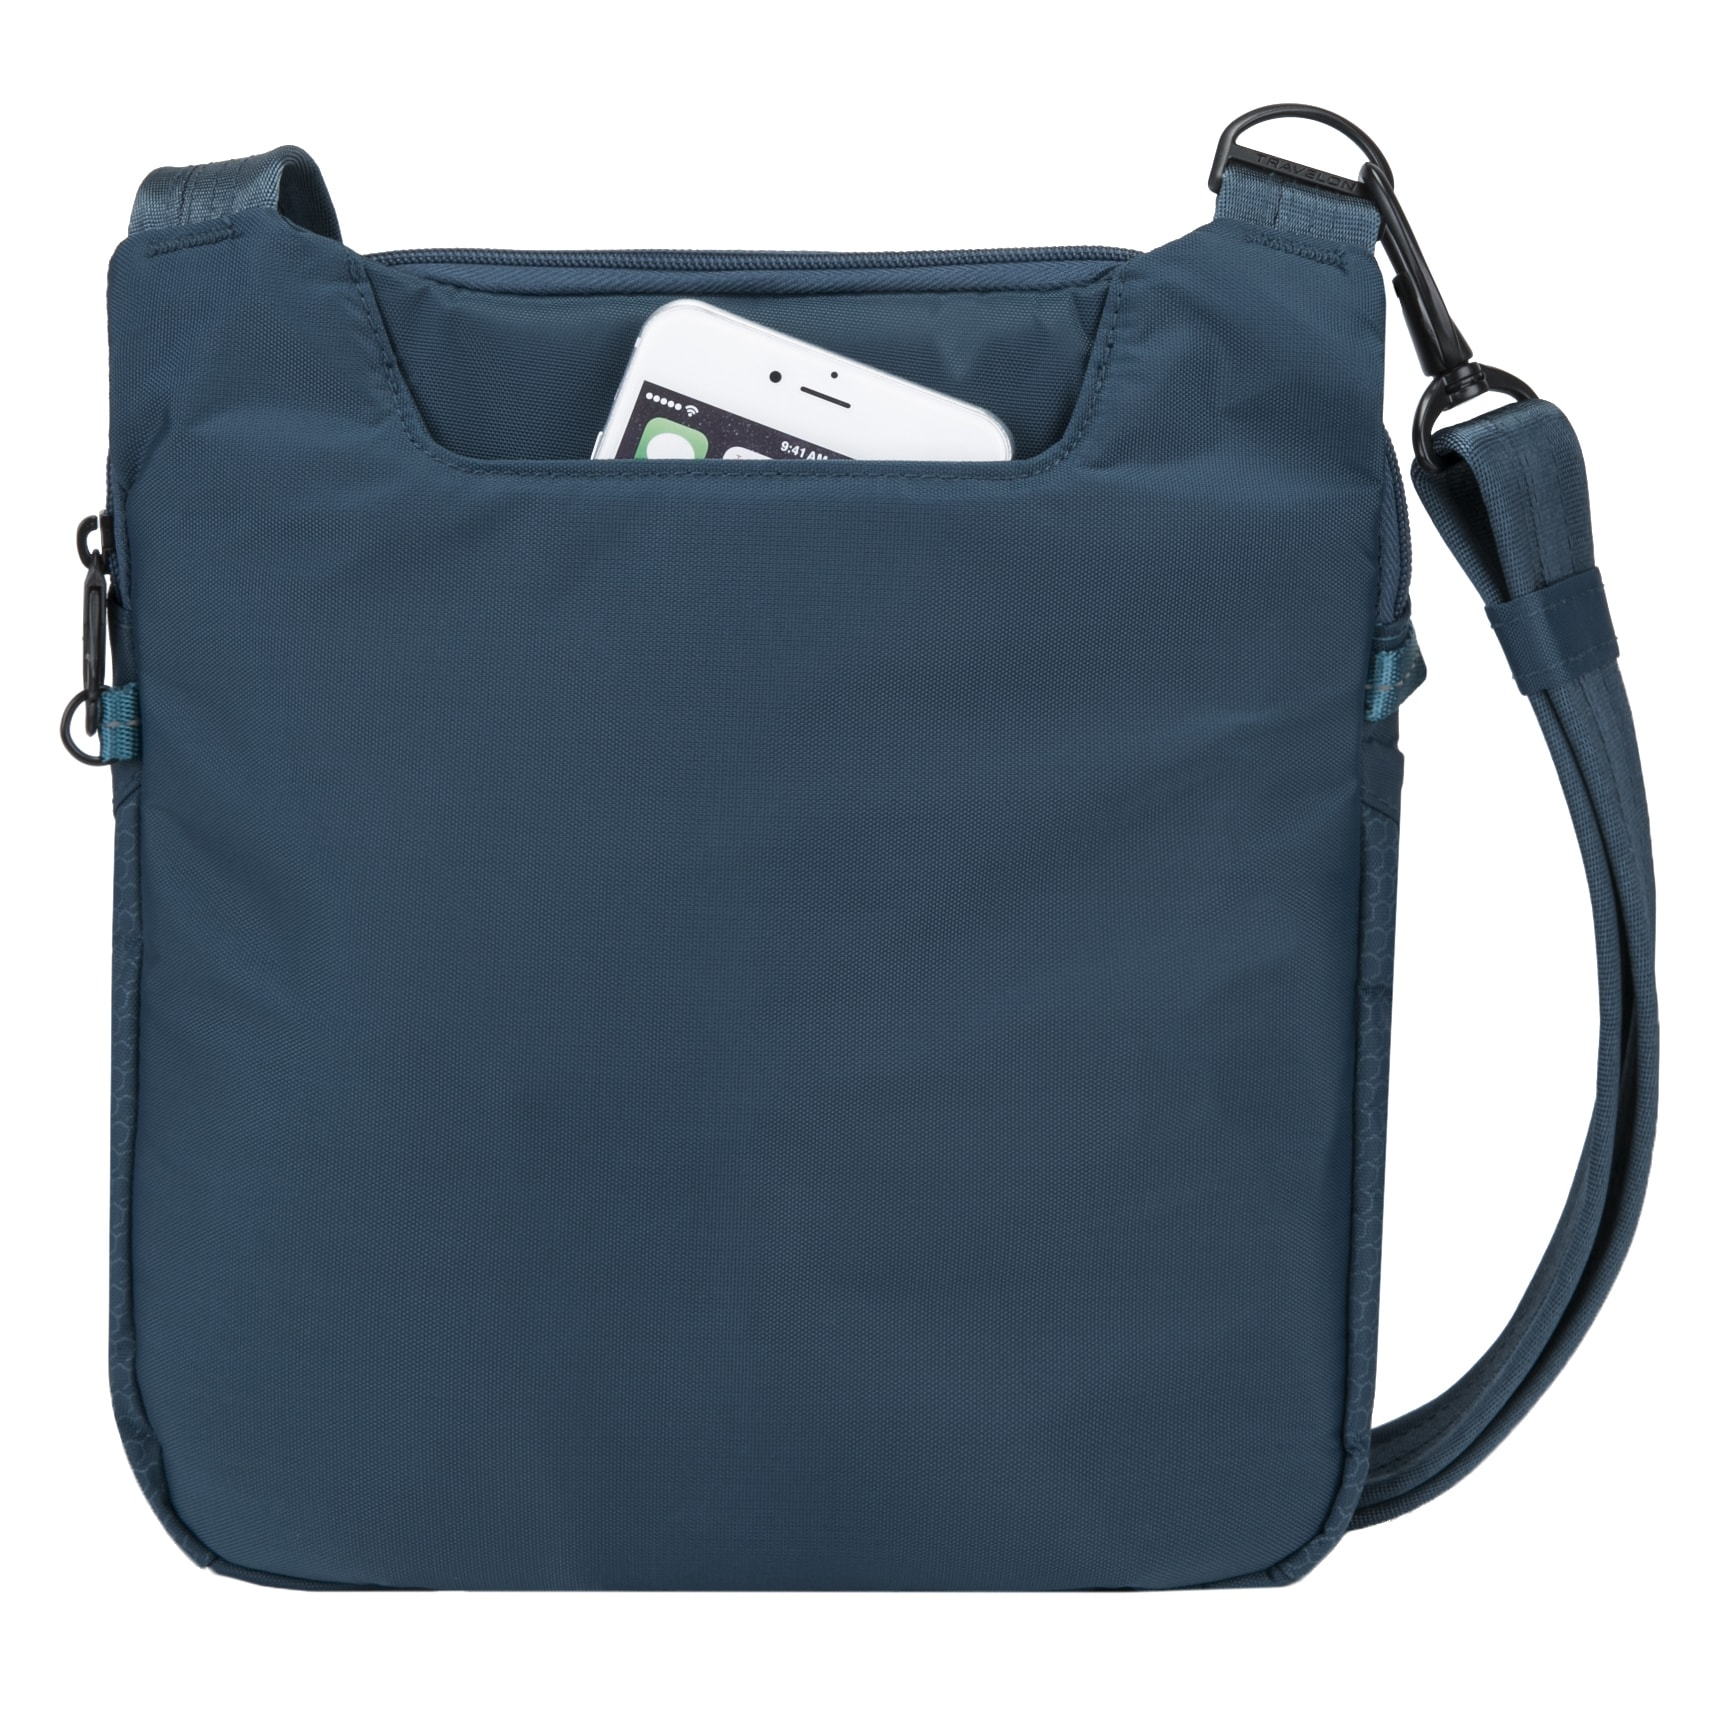 Shop Travelon Anti-Theft Active Small Crossbody Bag - Free Shipping On  Orders Over  45 - Overstock - 15614262 1d3e4a50891a7